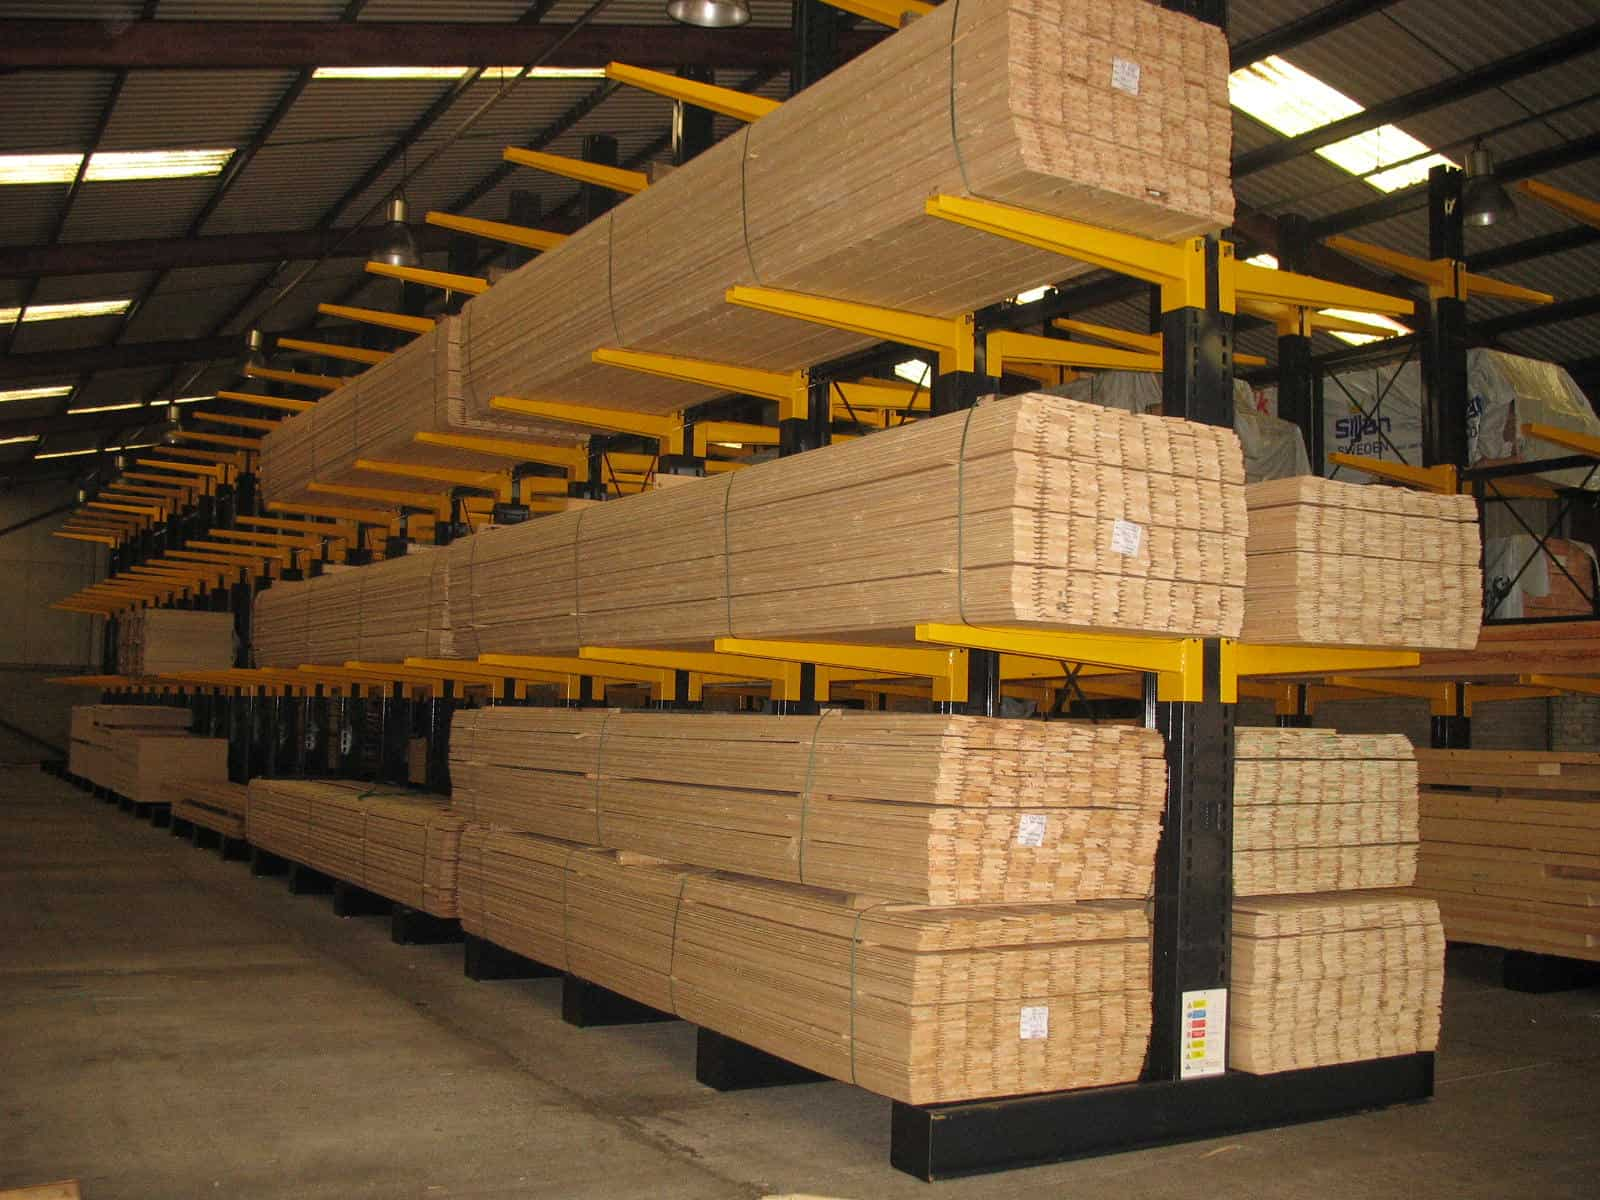 Softwood Timber stored on Stakapal Cantilever Racking reduces the risk to staff and customers posed by bulk stacking